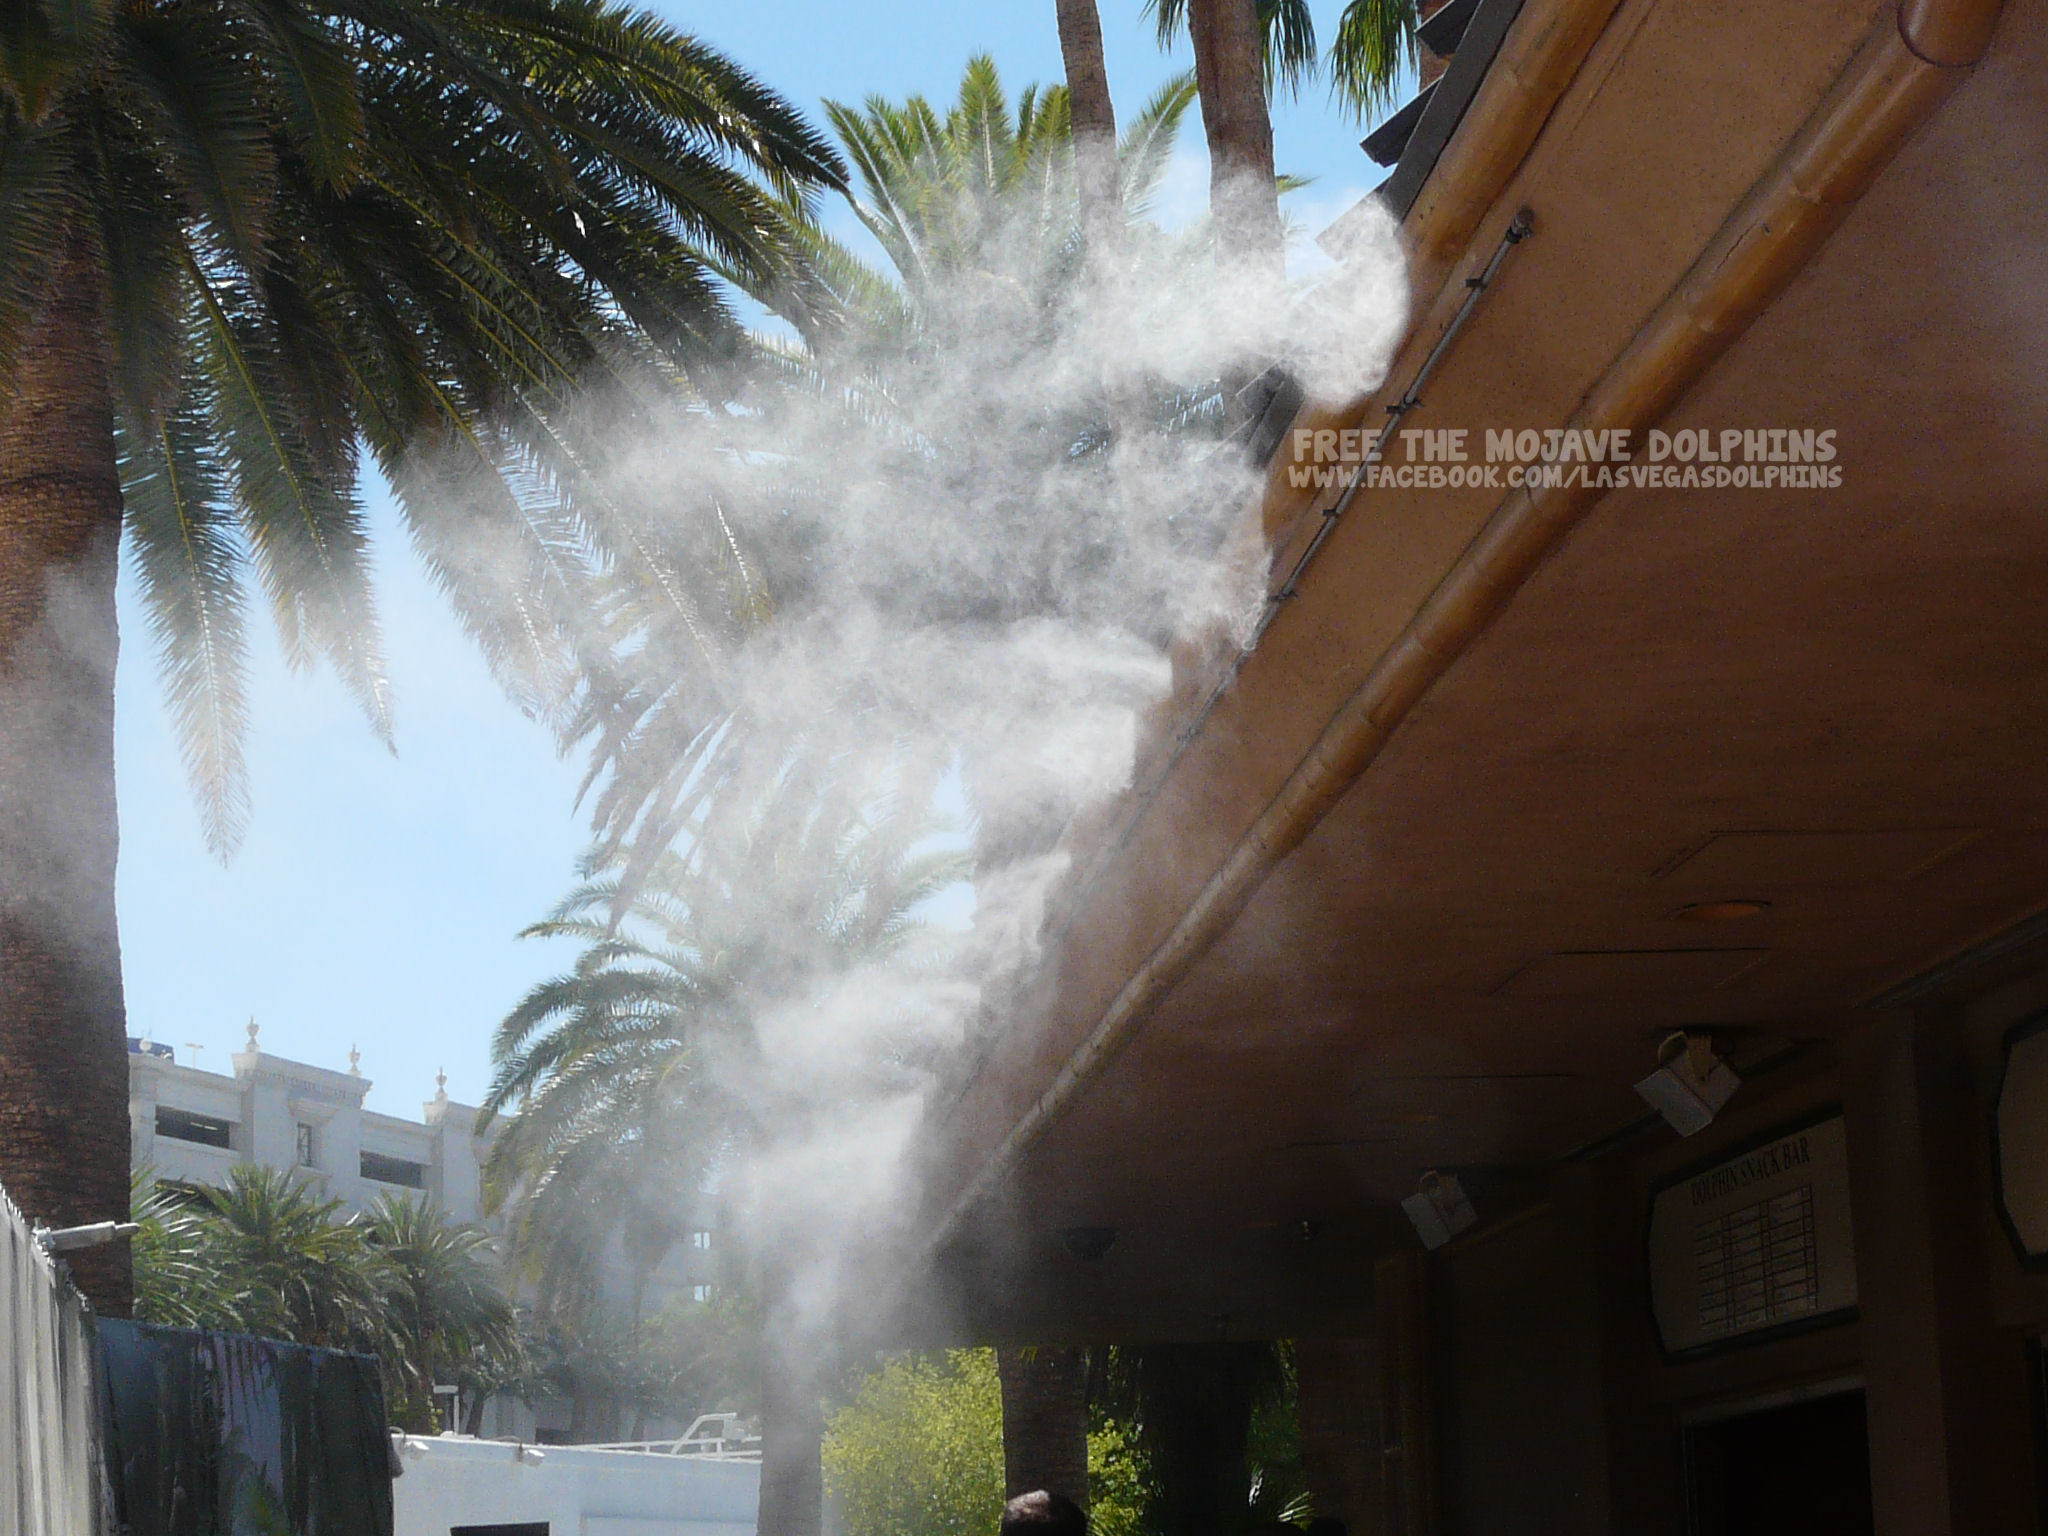 Misters near the snack bar offer brief relief from sweltering temps.